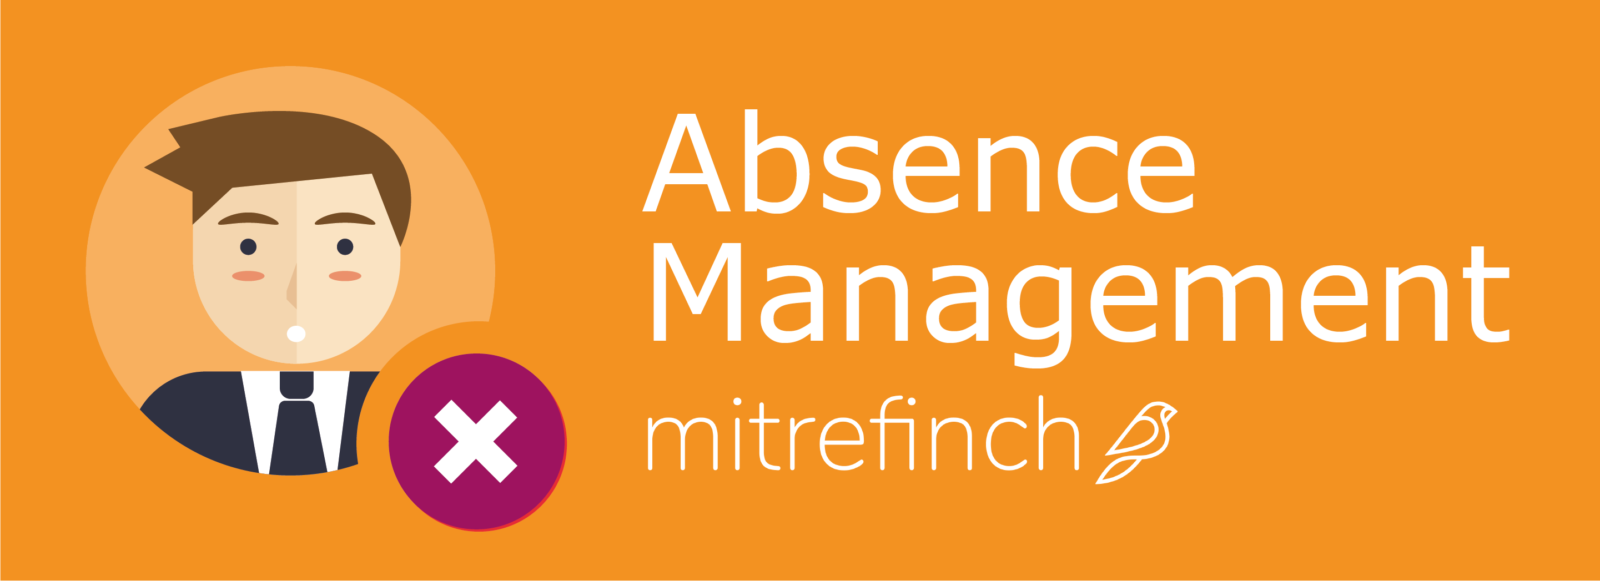 blog-absense-management